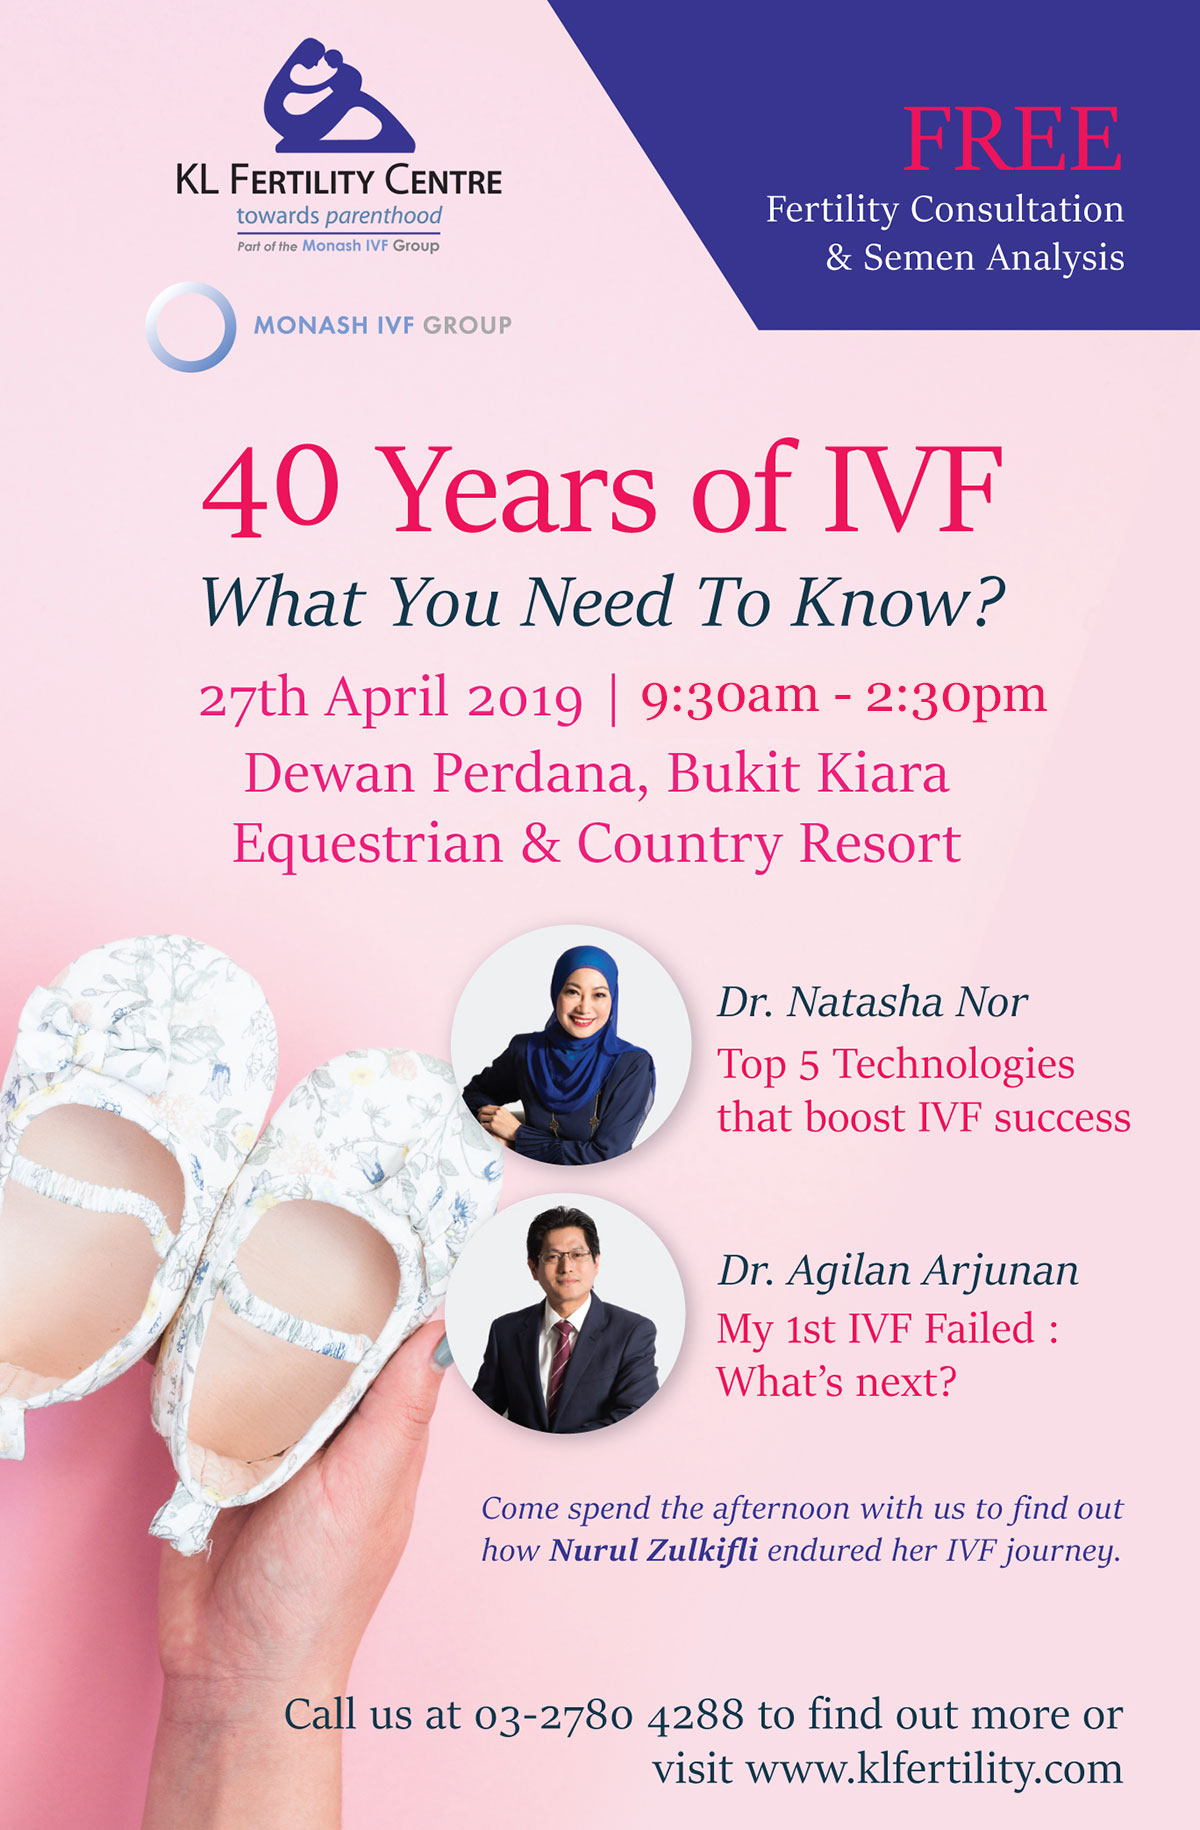 40 Years of IVF: What You Need To Know? - 27th April 2019